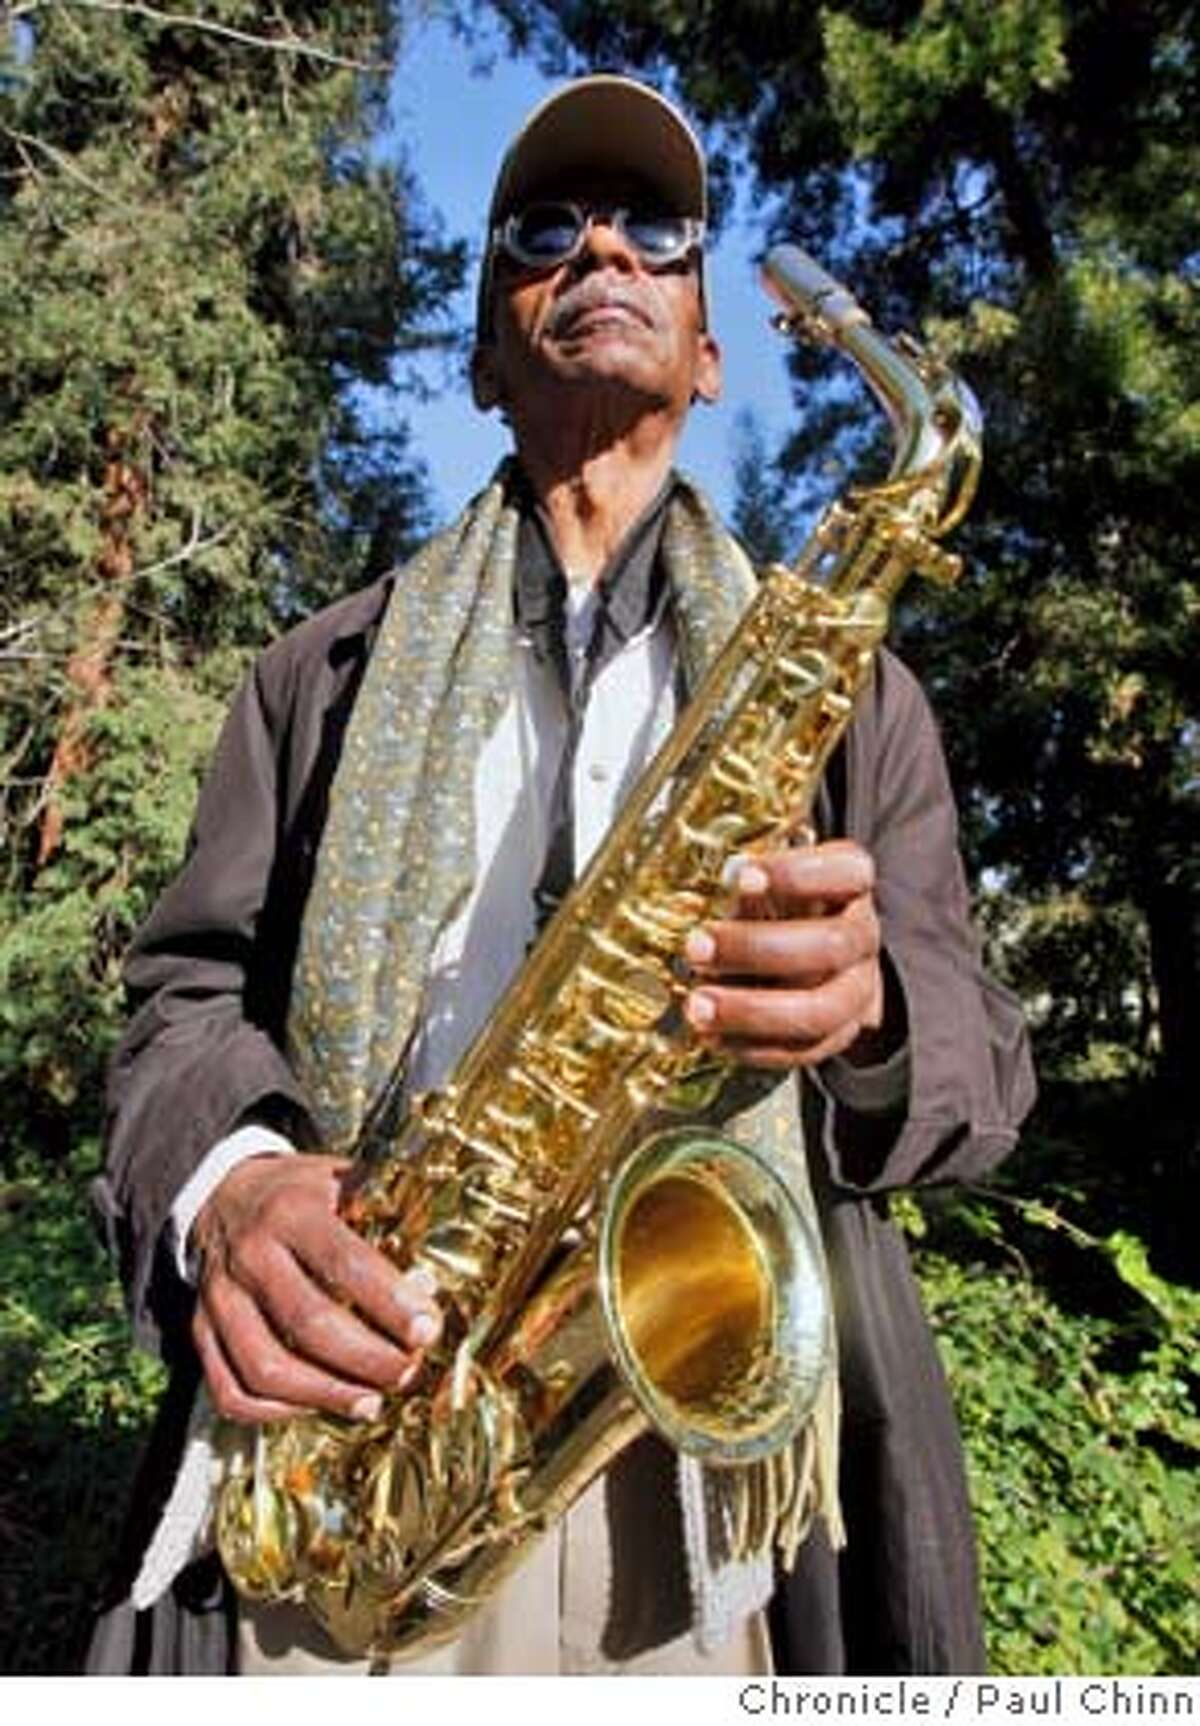 Jazz musician and Mills College professor Roscoe Mitchell and his saxophone in Oakland, Calif. on Wednesday, Feb. 13, 2008. PAUL CHINN/San Francisco Chronicle